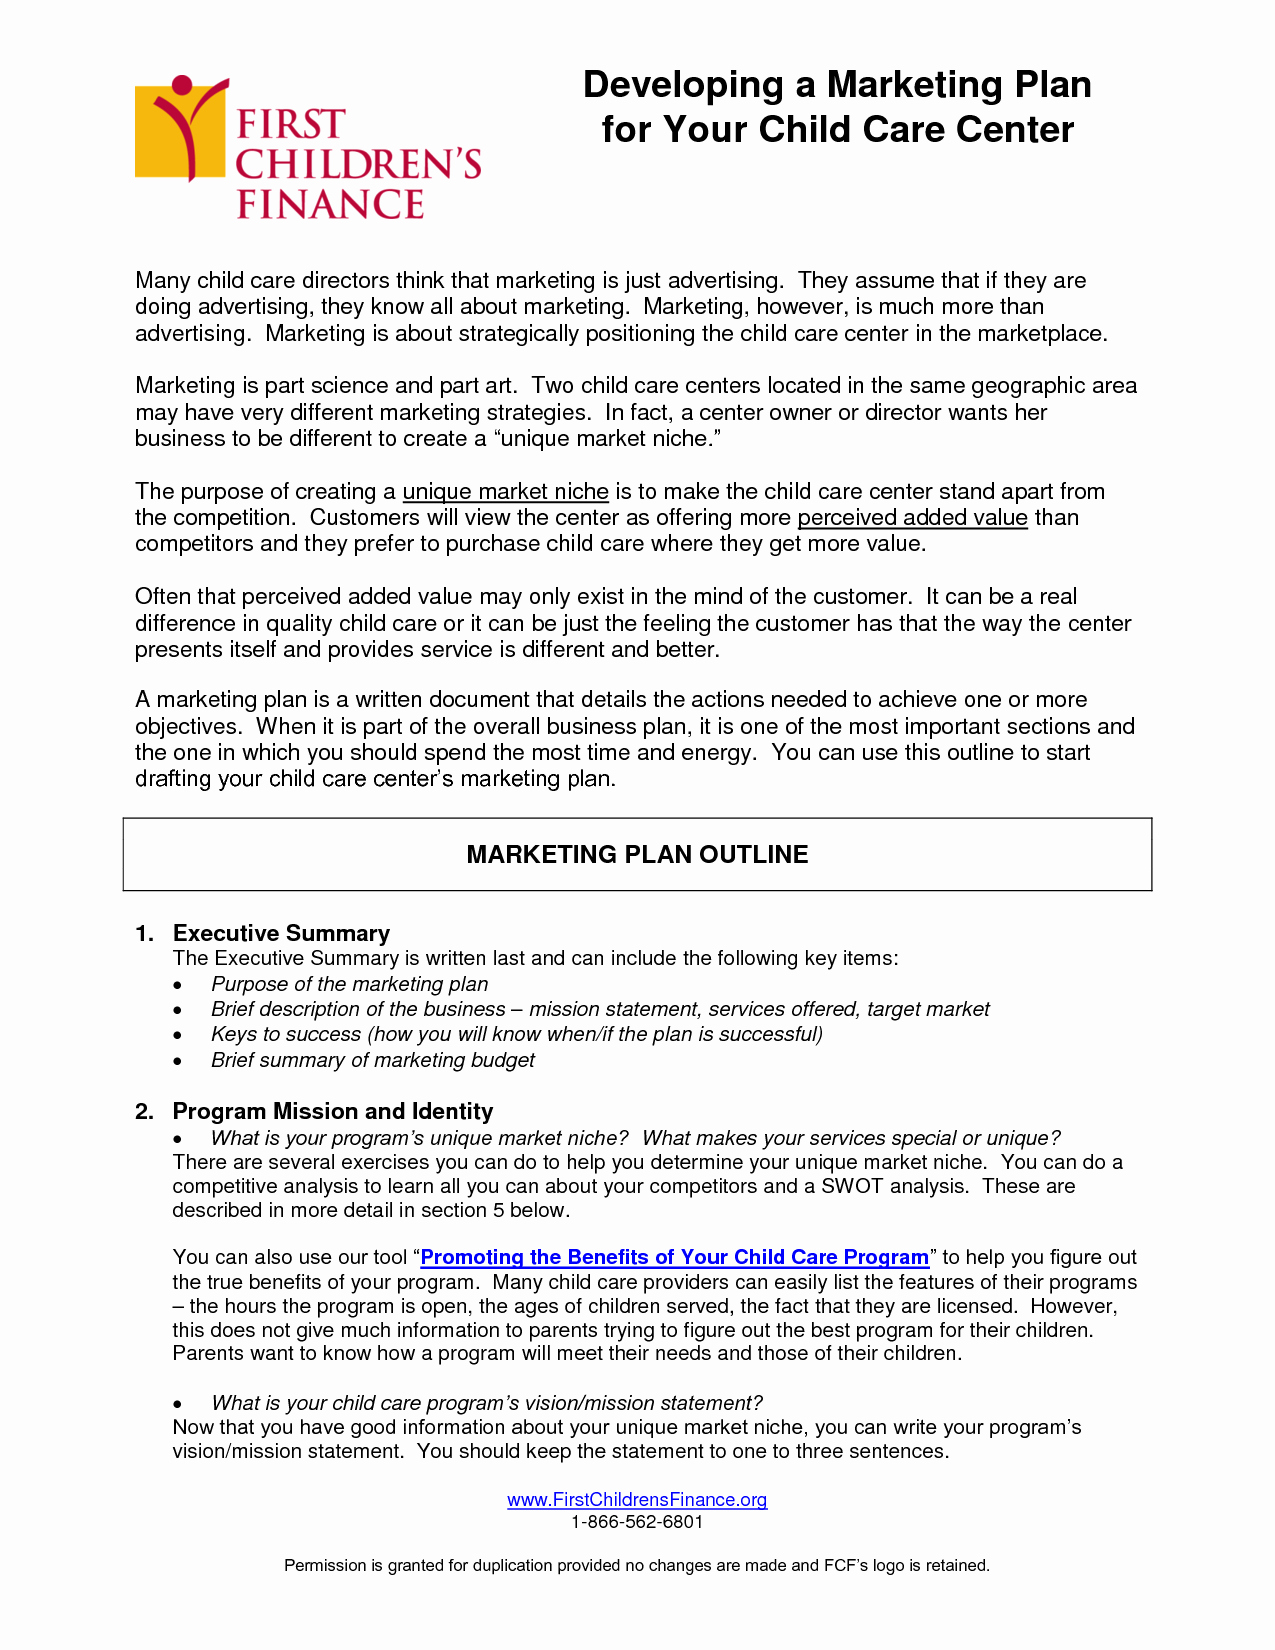 Daycare Business Plan Template Free Download Inspirational Writing A Business Plan for A Daycare Center